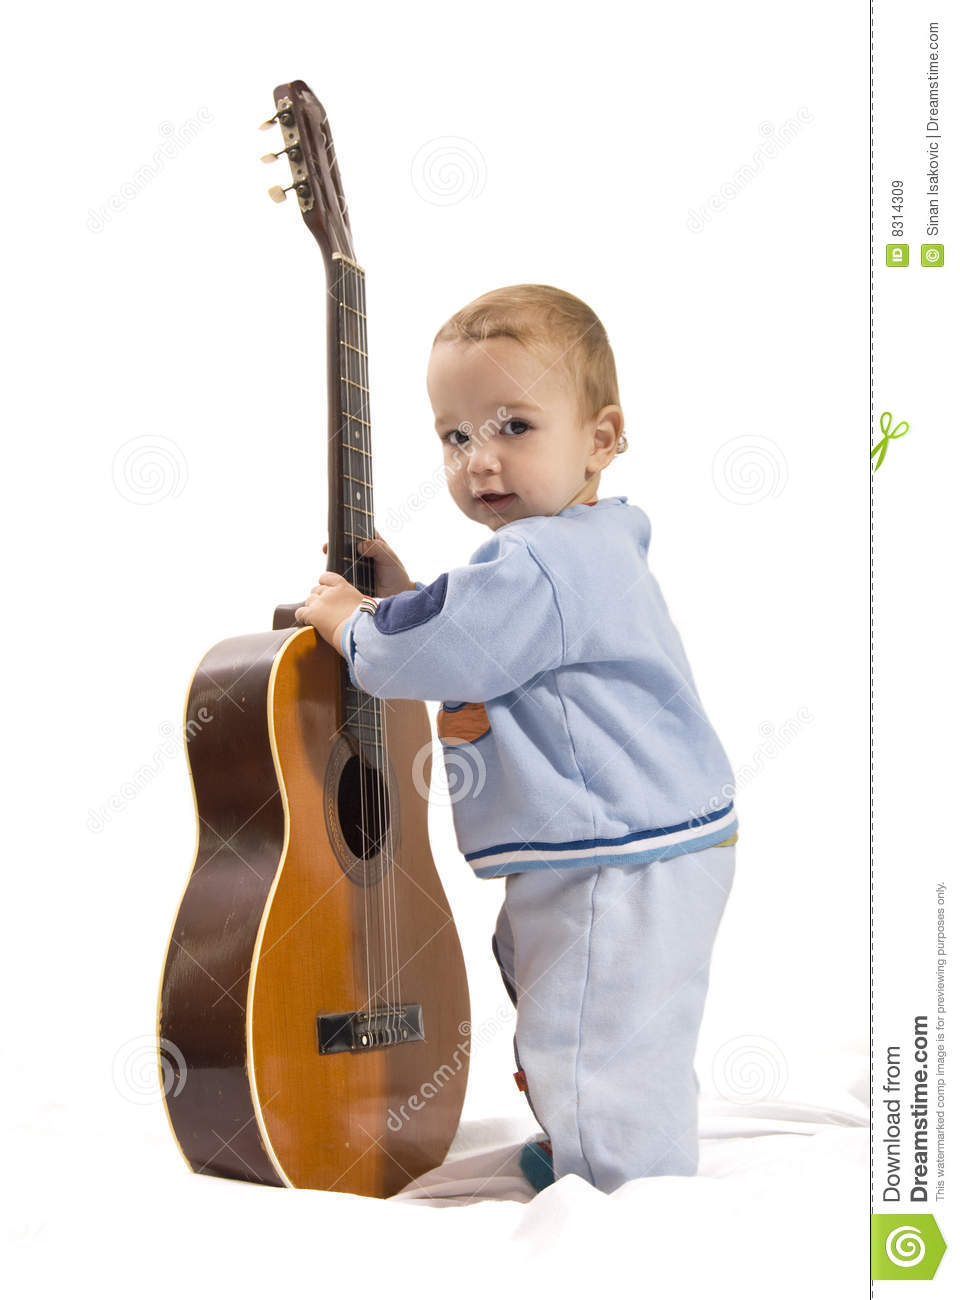 Playing guitar stock image  Image of birthday, friendship